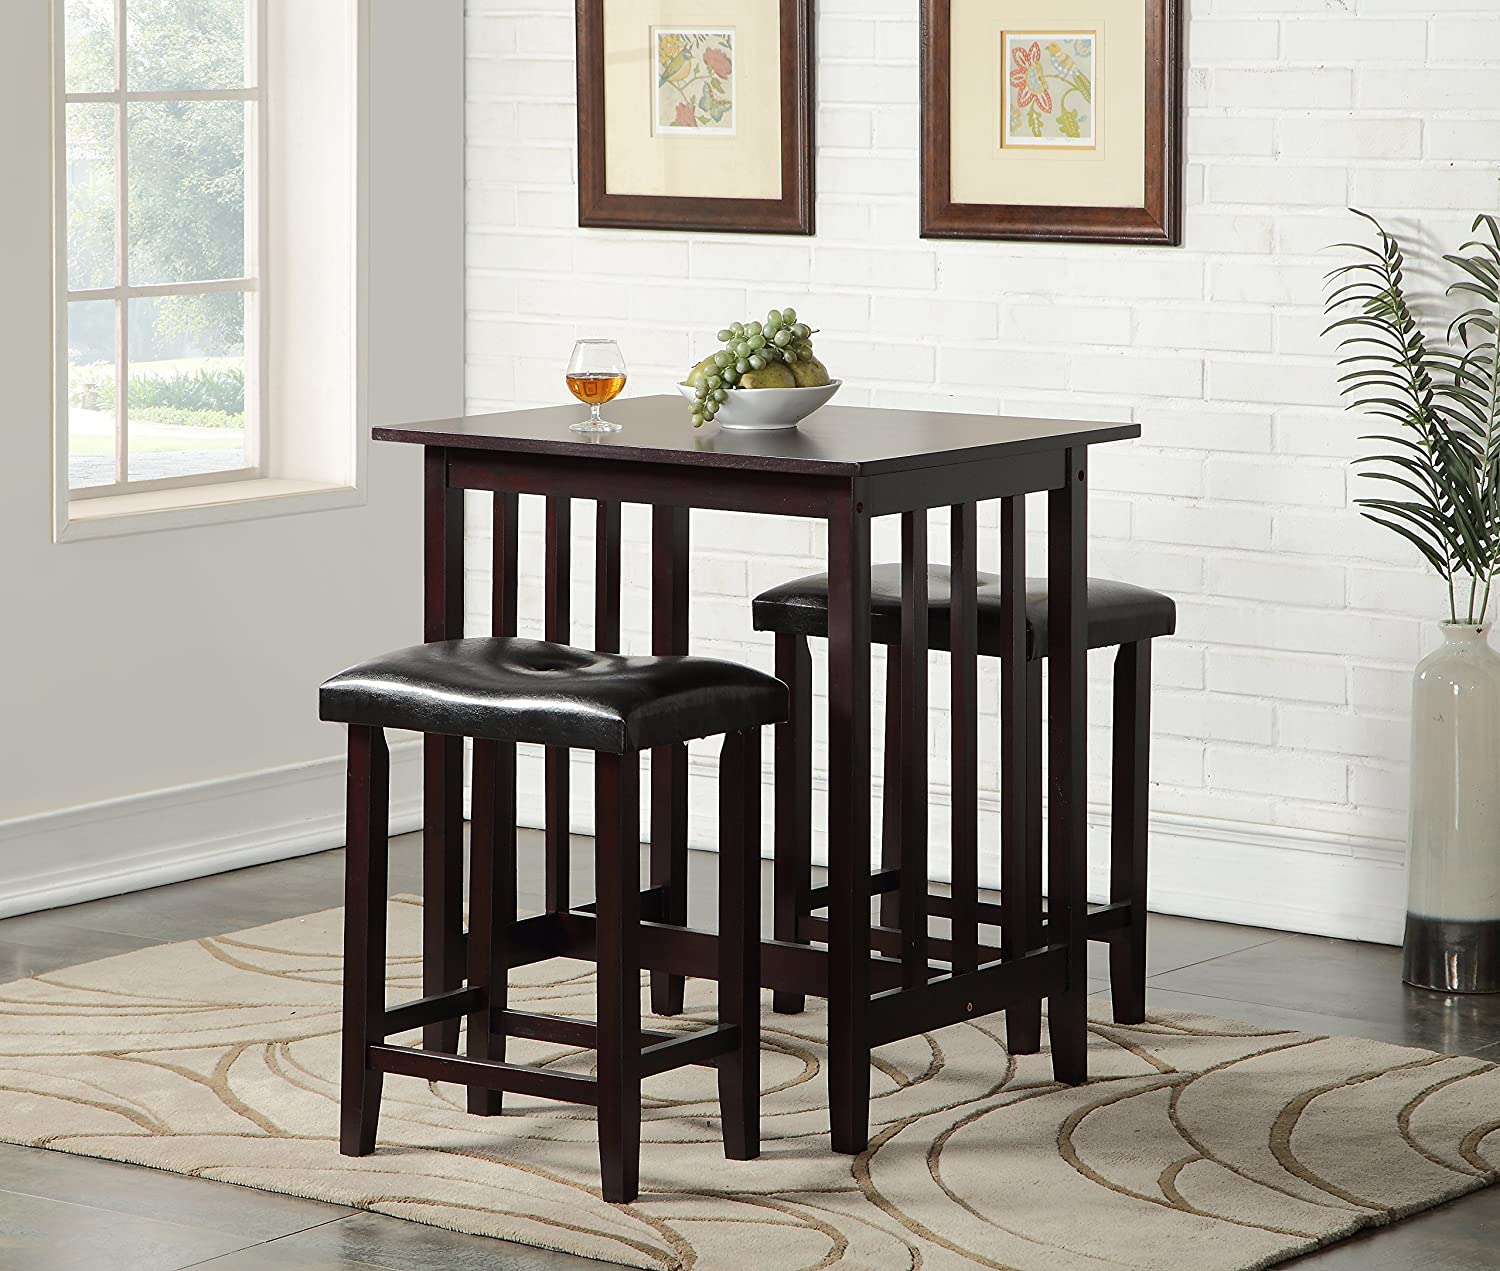 Amazon.com - Roundhill Furniture 3-Piece Counter Height Dining Set with Saddleback Stools Espresso - Table \u0026 Chair Sets & Amazon.com - Roundhill Furniture 3-Piece Counter Height Dining Set ...